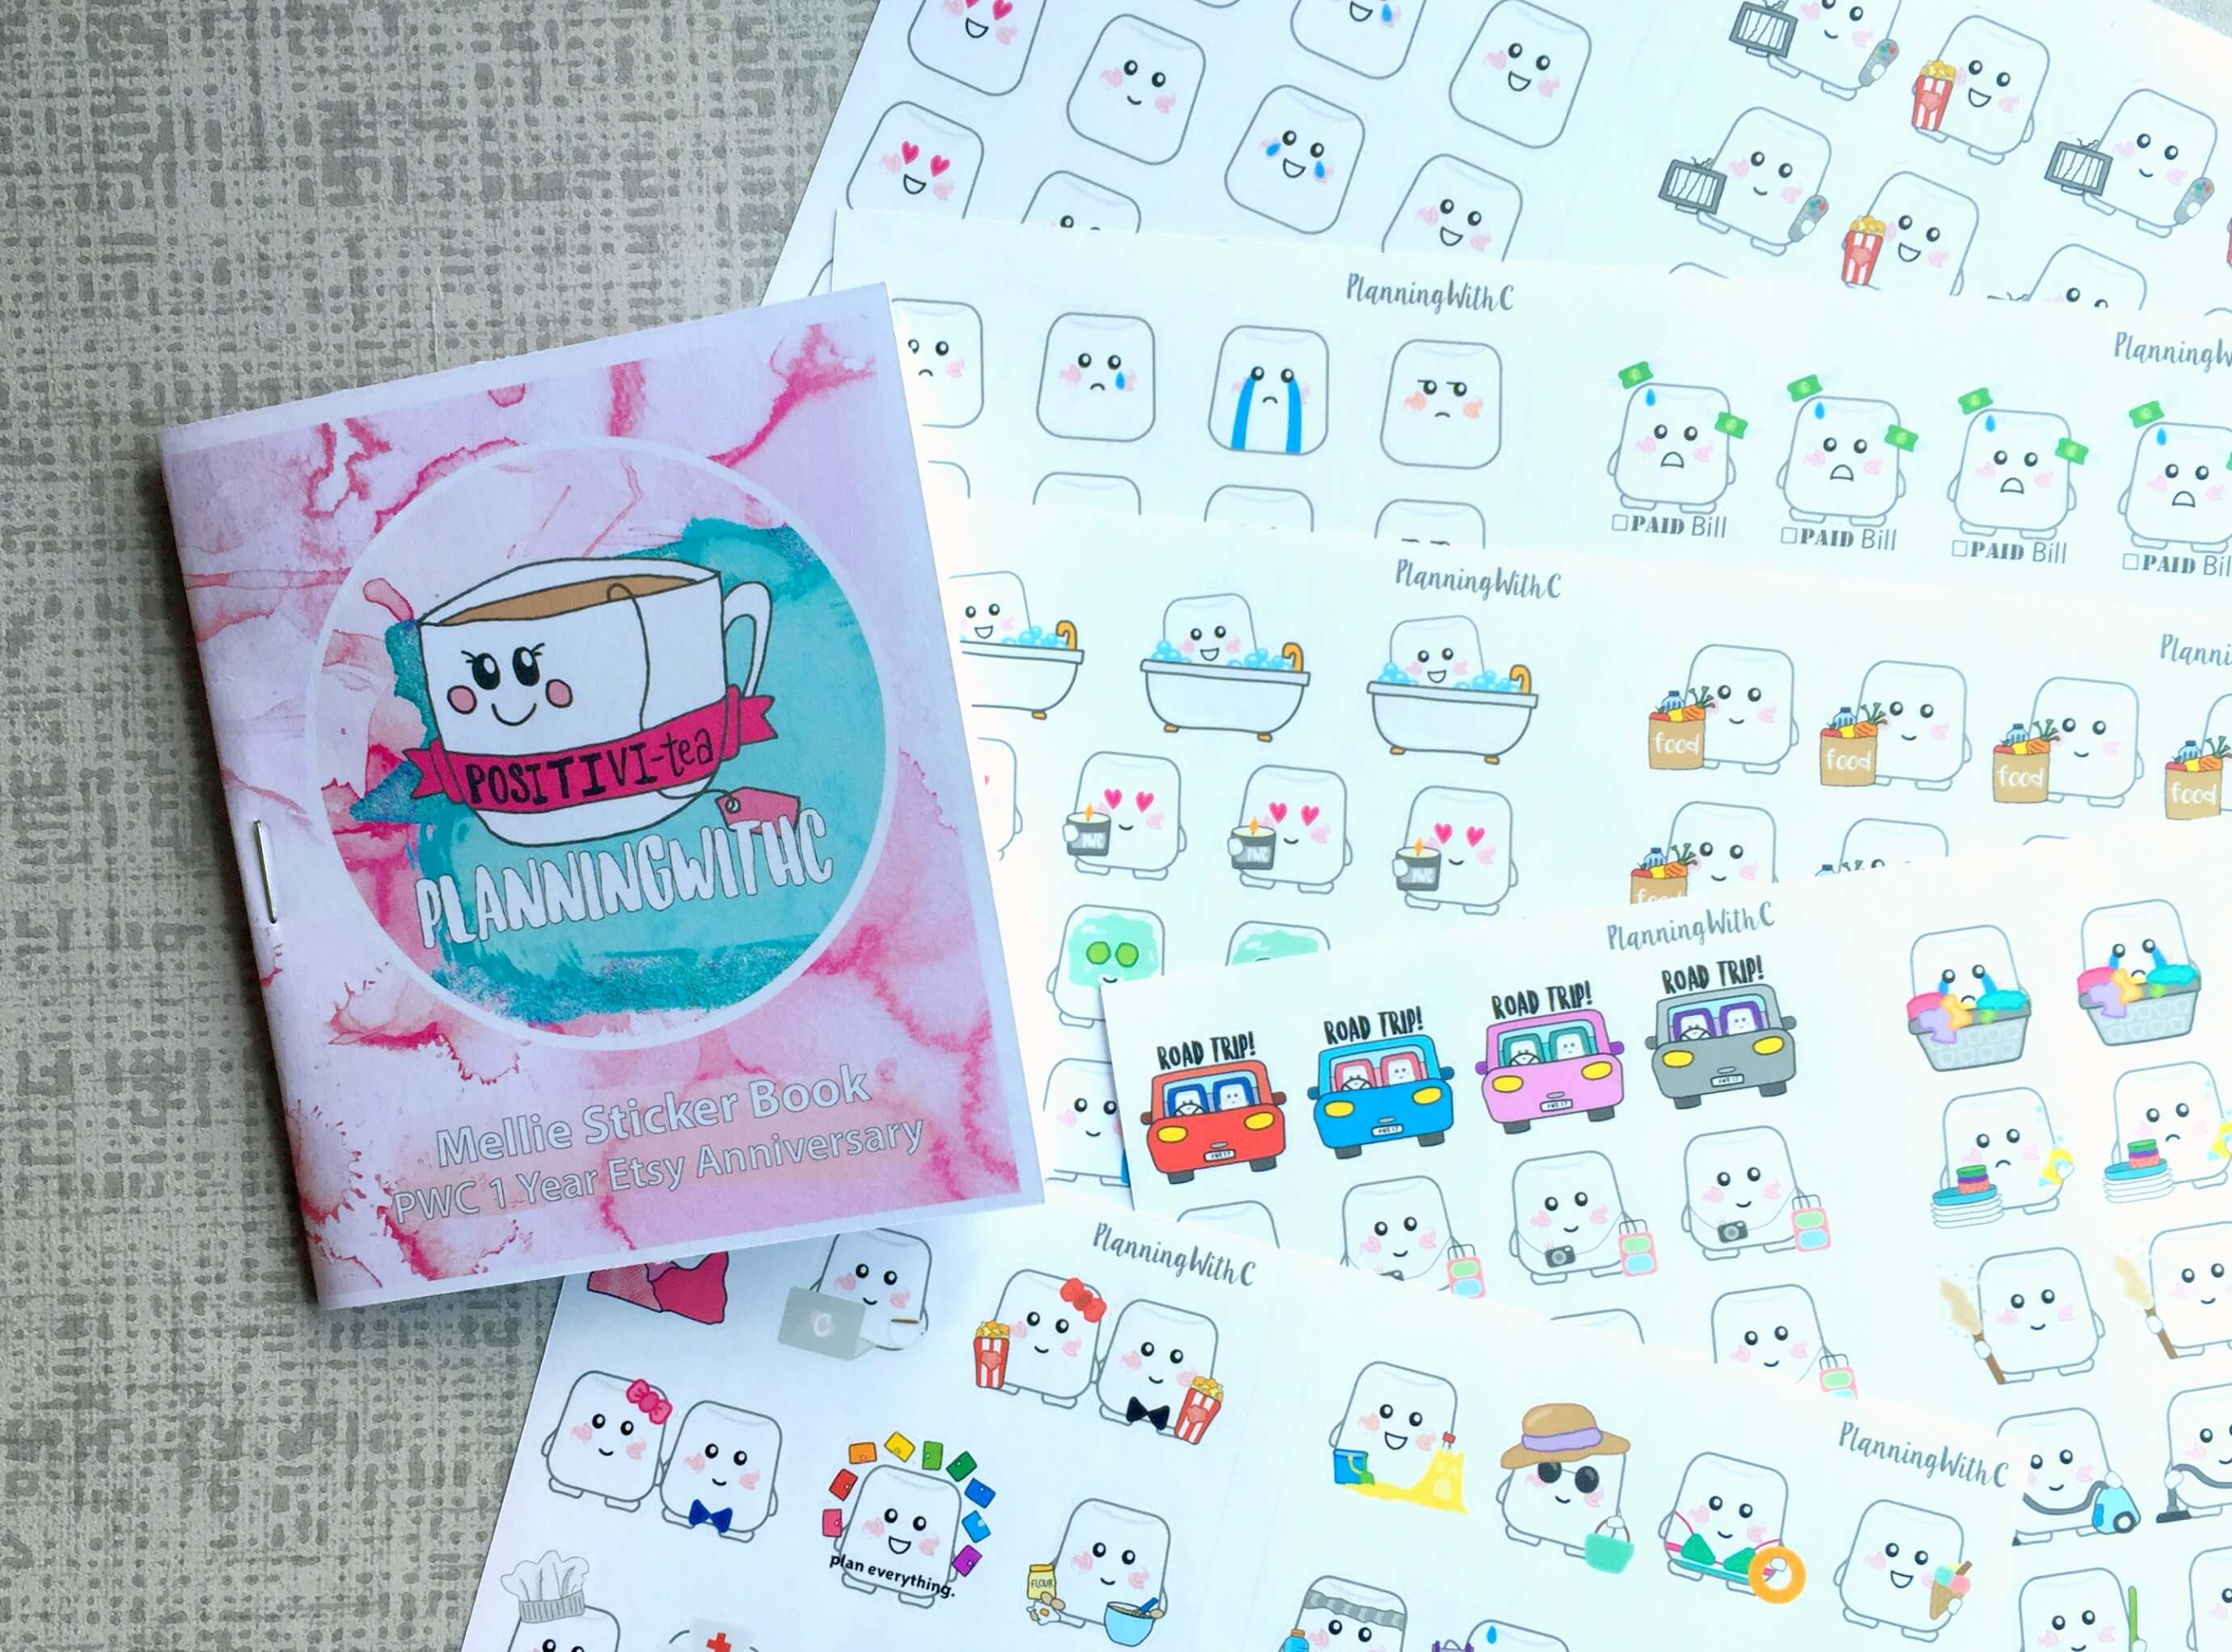 Planner Stickers // PlanningWithC